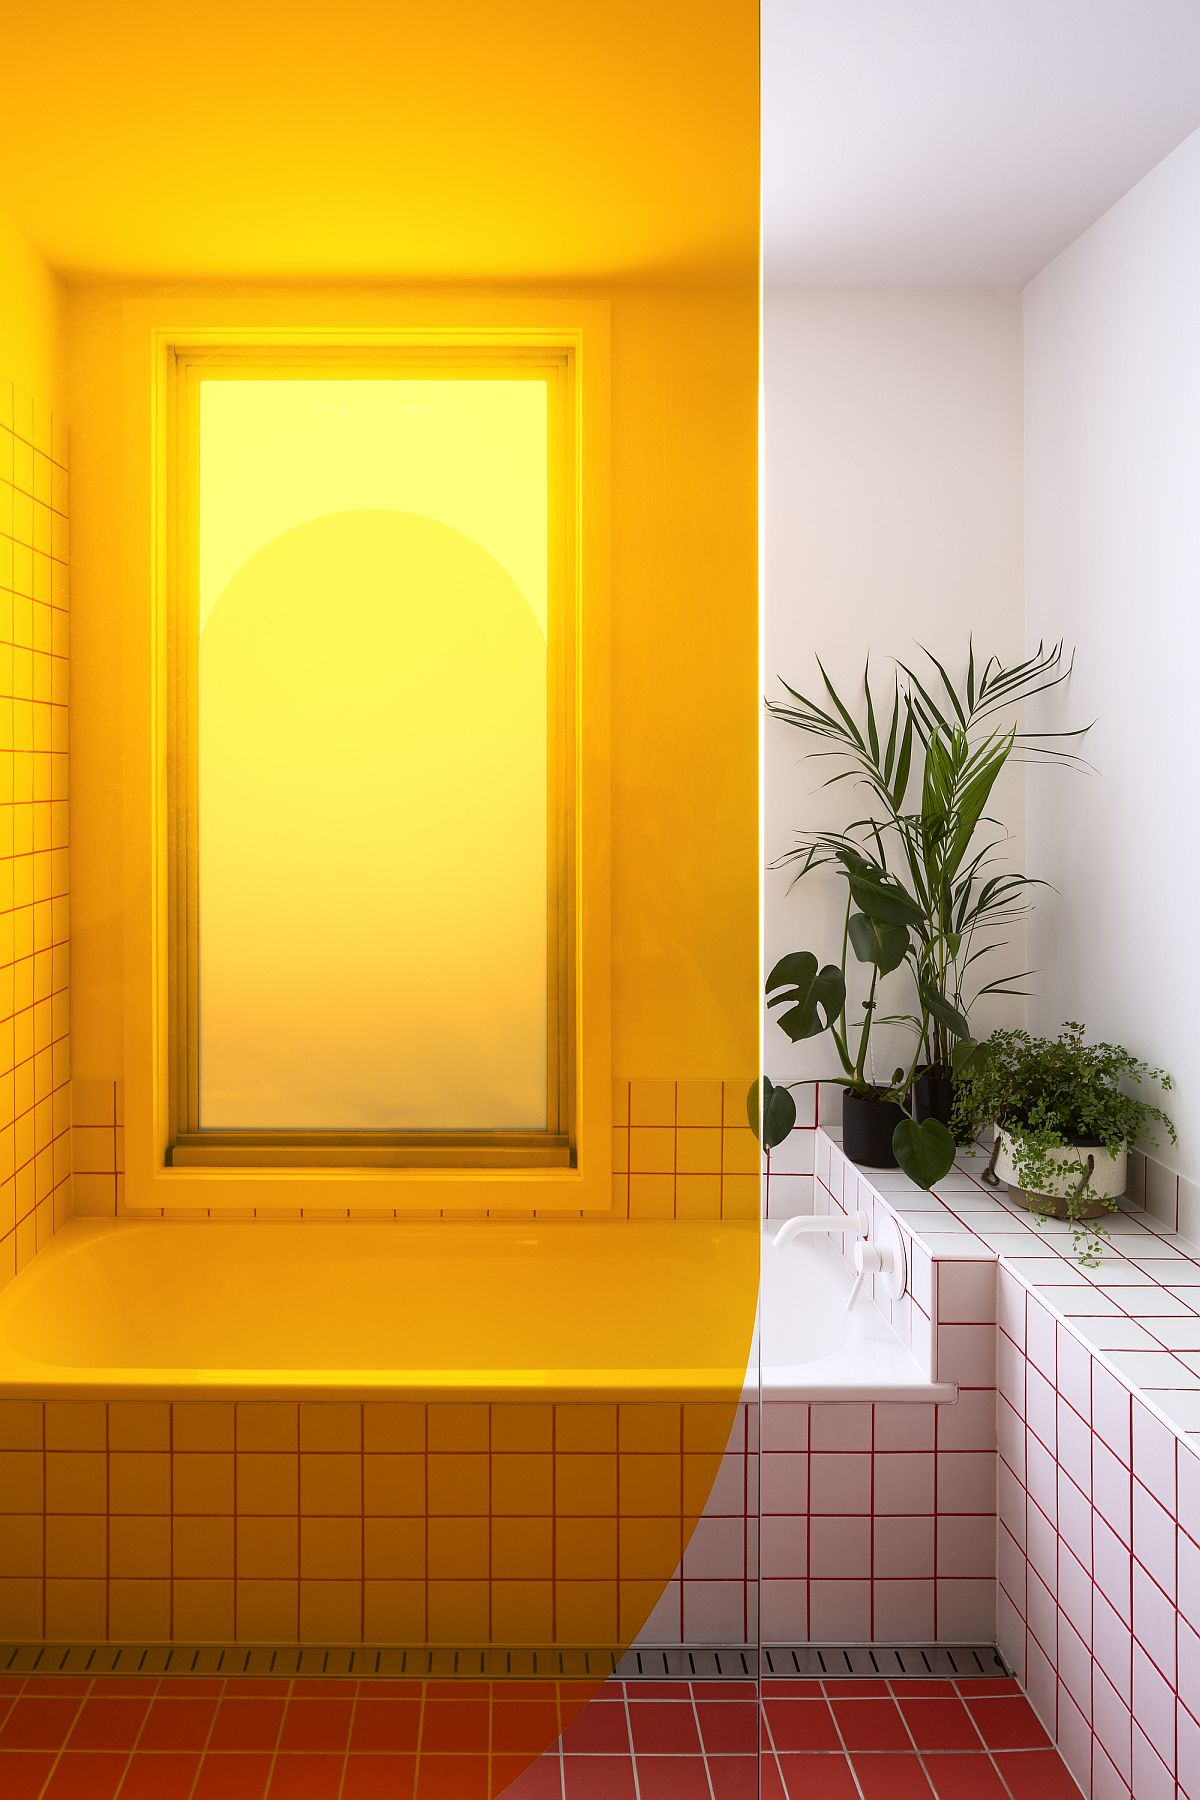 Brilliant-orange-section-makes-an-impression-in-thsi-colorful-contemporary-bathroom-77864